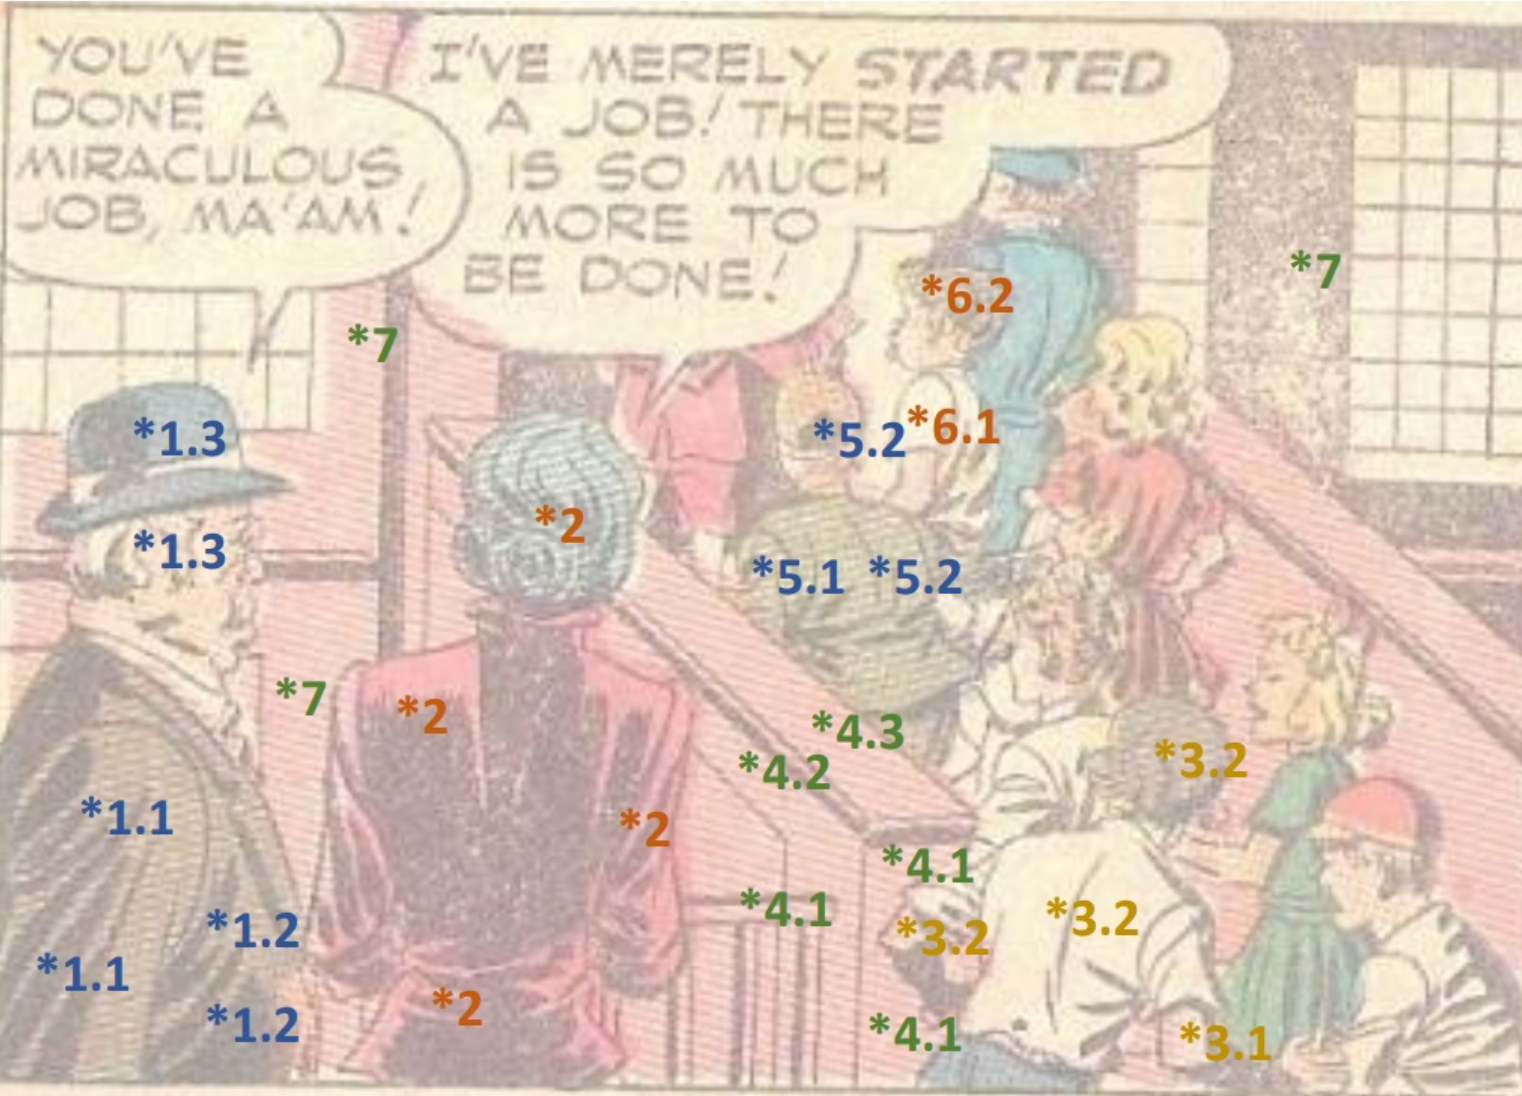 Left: Illustration of the idea of inter-object and intra-object depth ordering, used to annotate the comics images. The closer object is assigned a lower first number